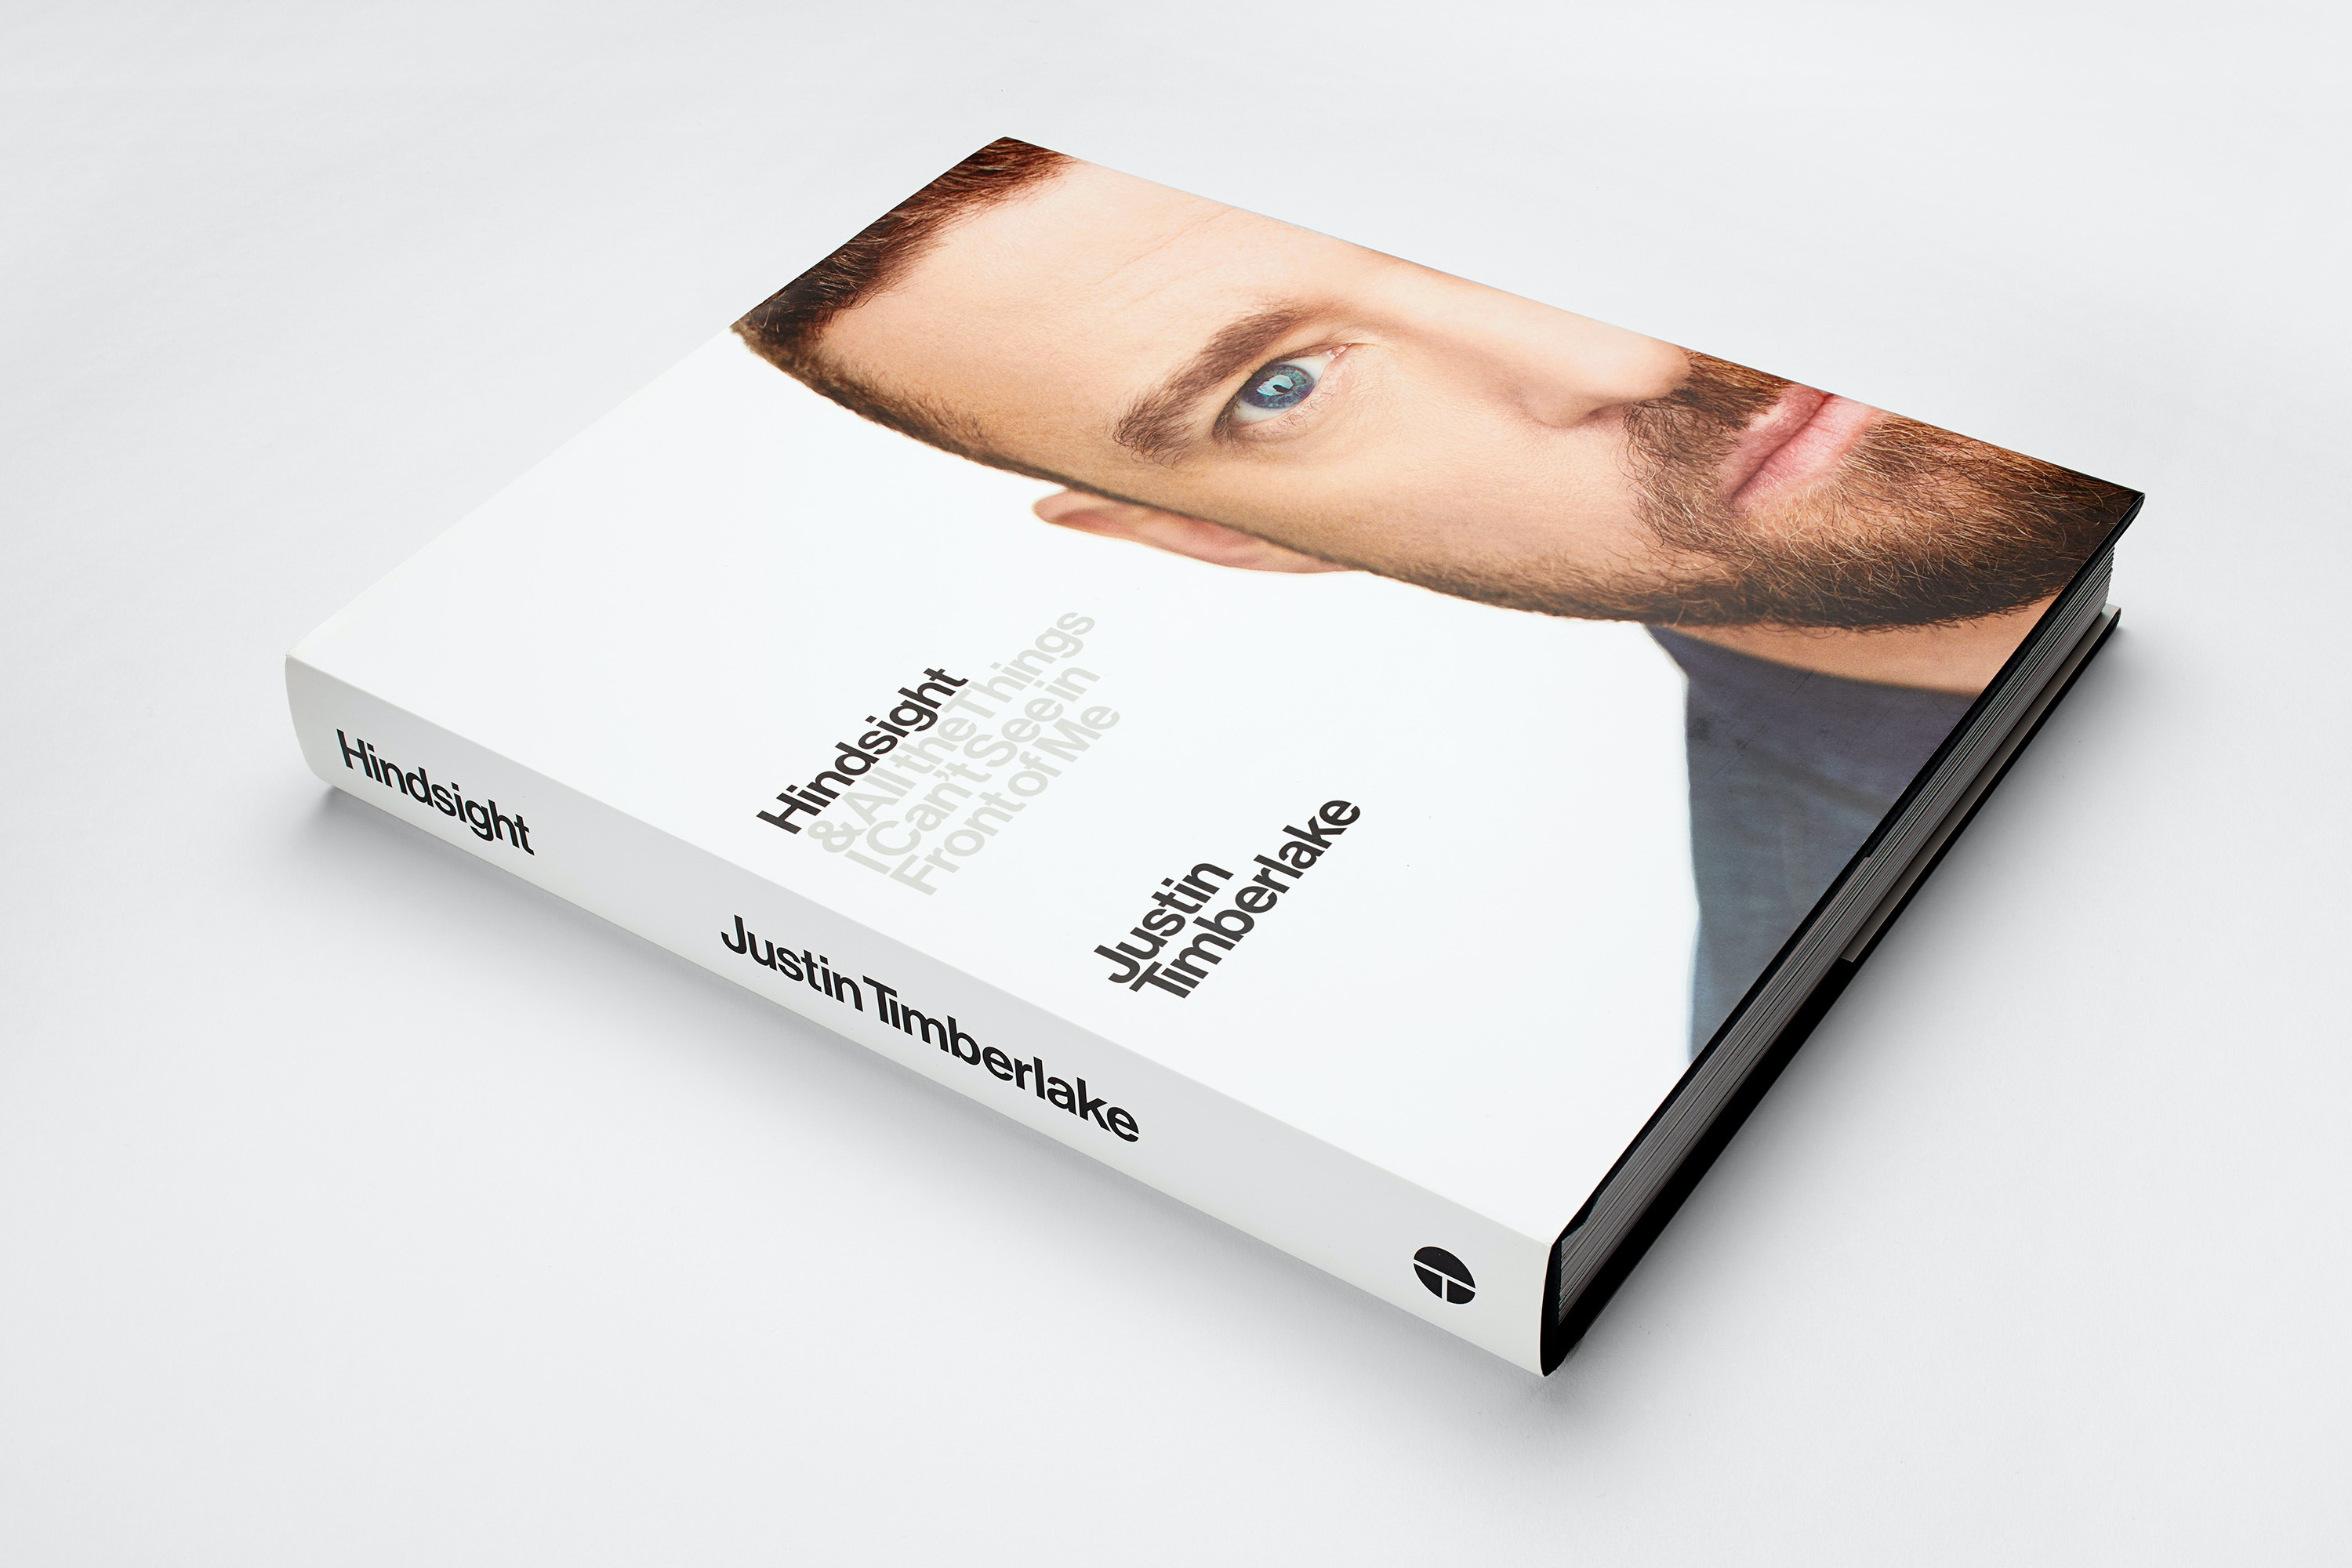 Justin Timberlake Turns Interior Designer To Launch New Where Can Interior Designers Work The First Book From Musical Artist Justin Timberlake Features A Design As  Varied As His Career.